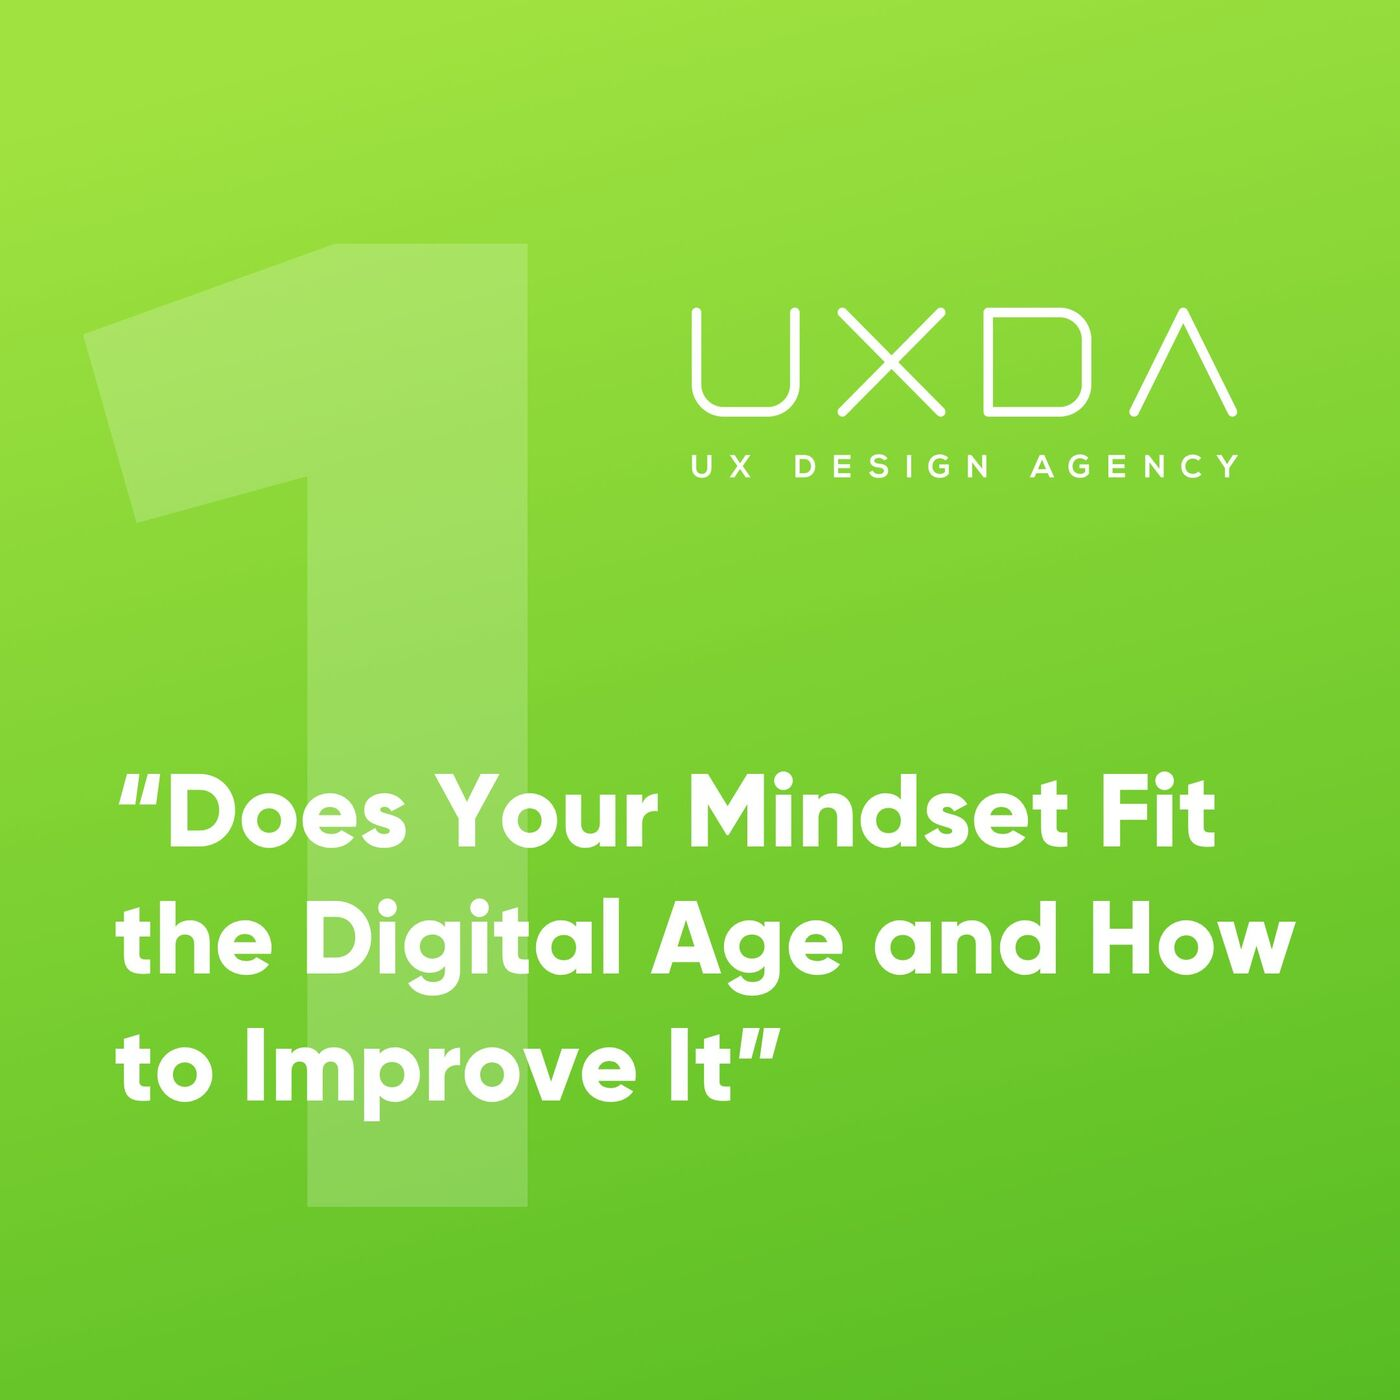 #1 Does Your Mindset Fit The Digital Age And How To Improve It